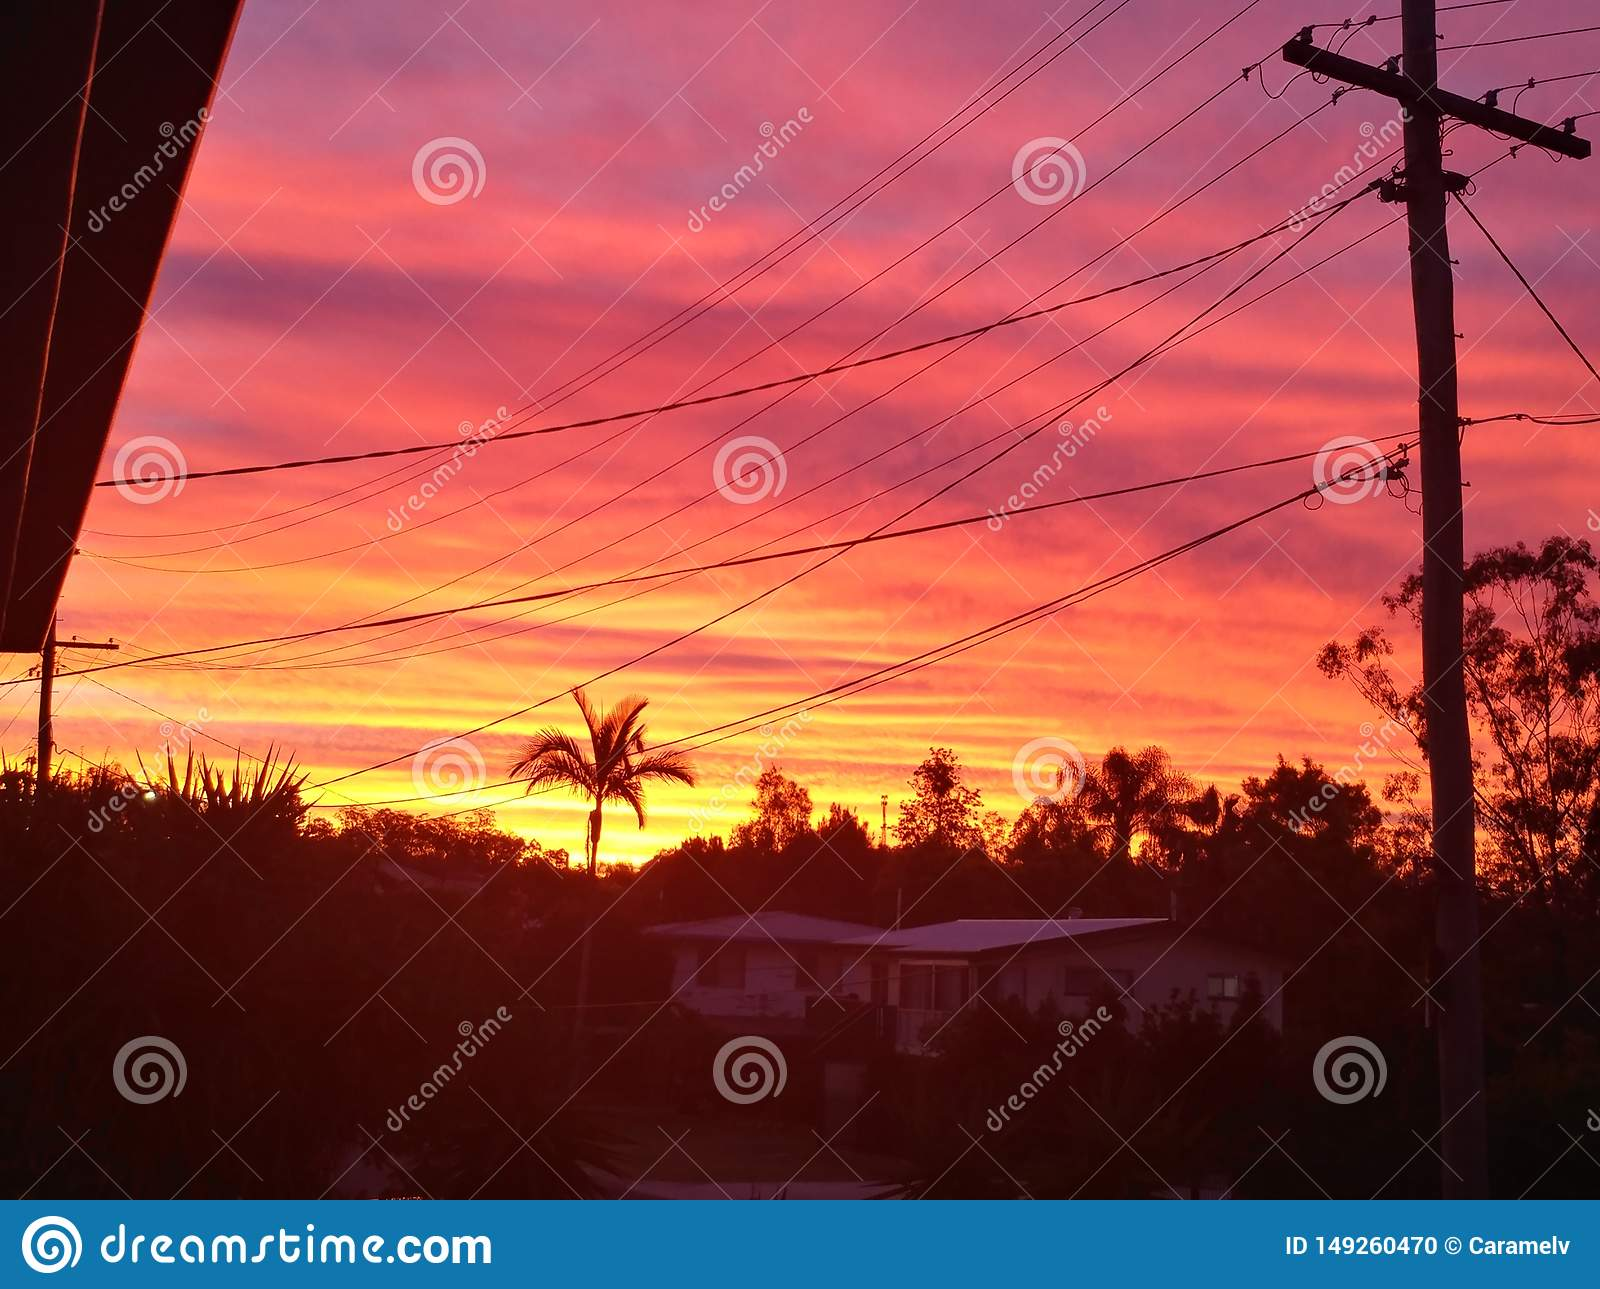 Sunset and powerlines stock photo. Image of pink, evening ...